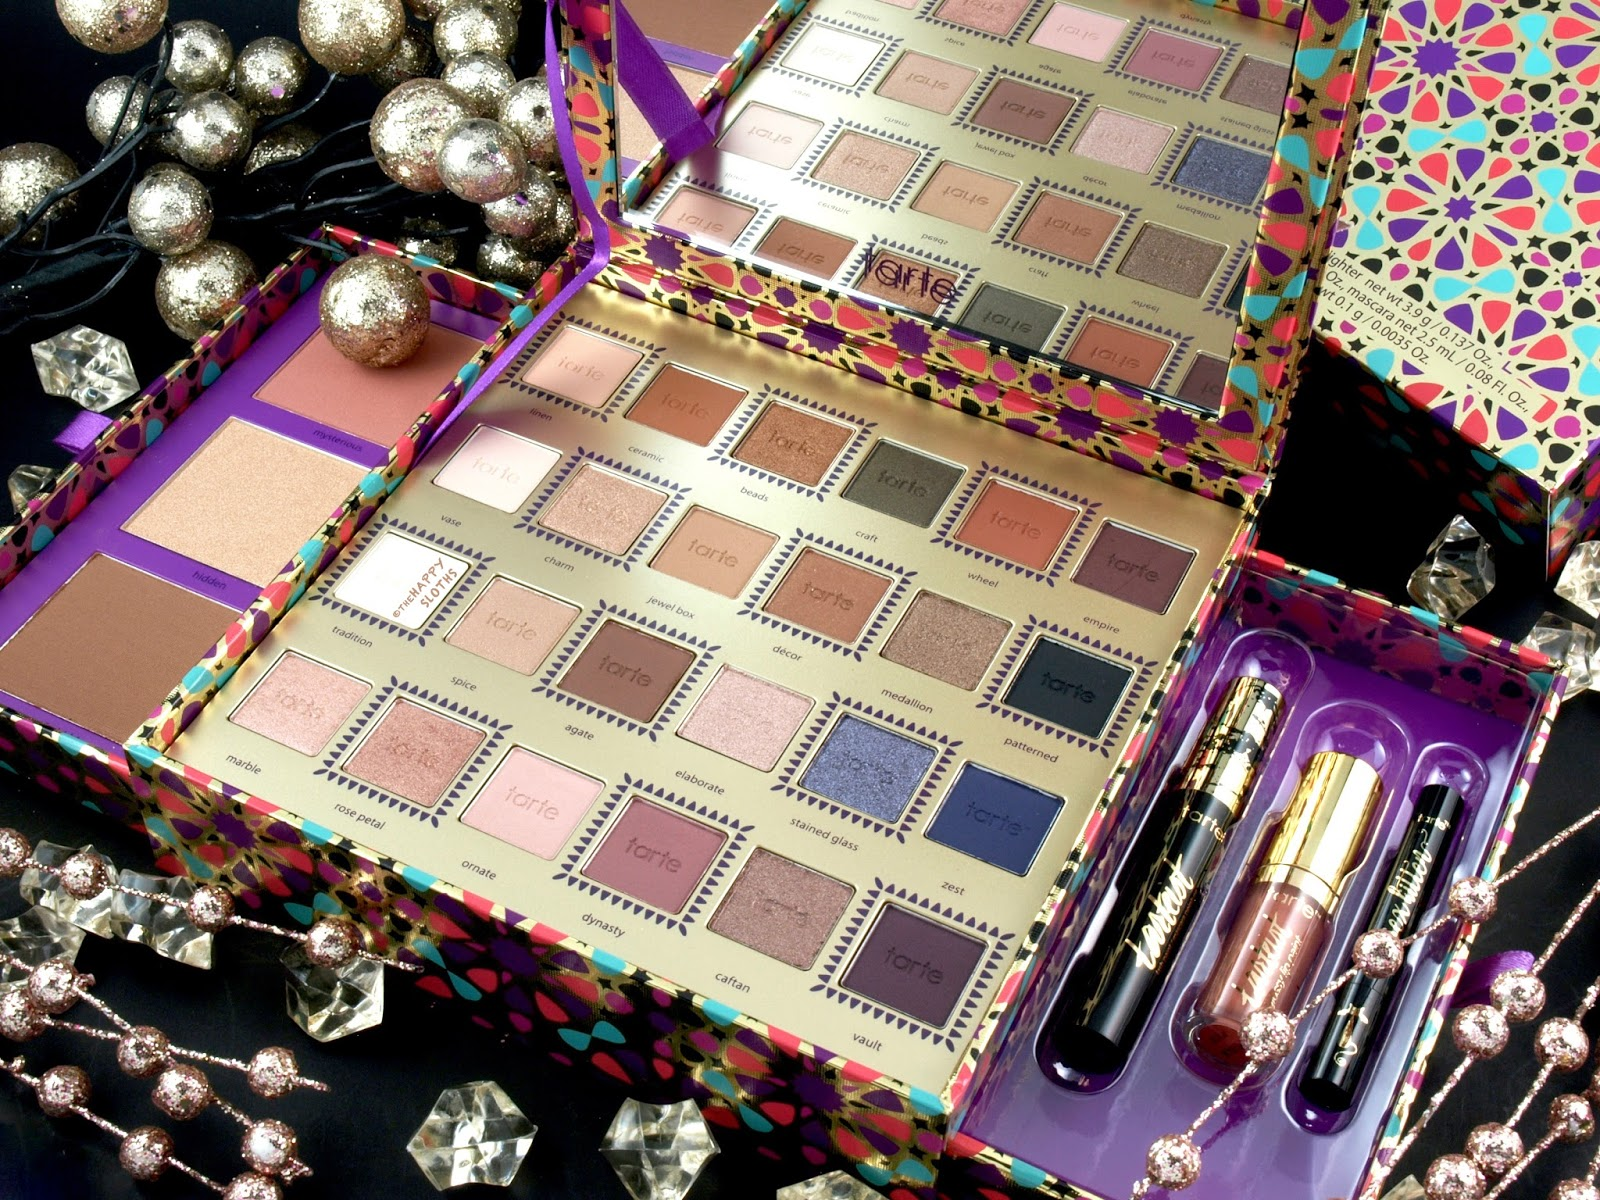 Tarte Holiday 2017 Tarteist Trove Collector's Set: Review and Swatches